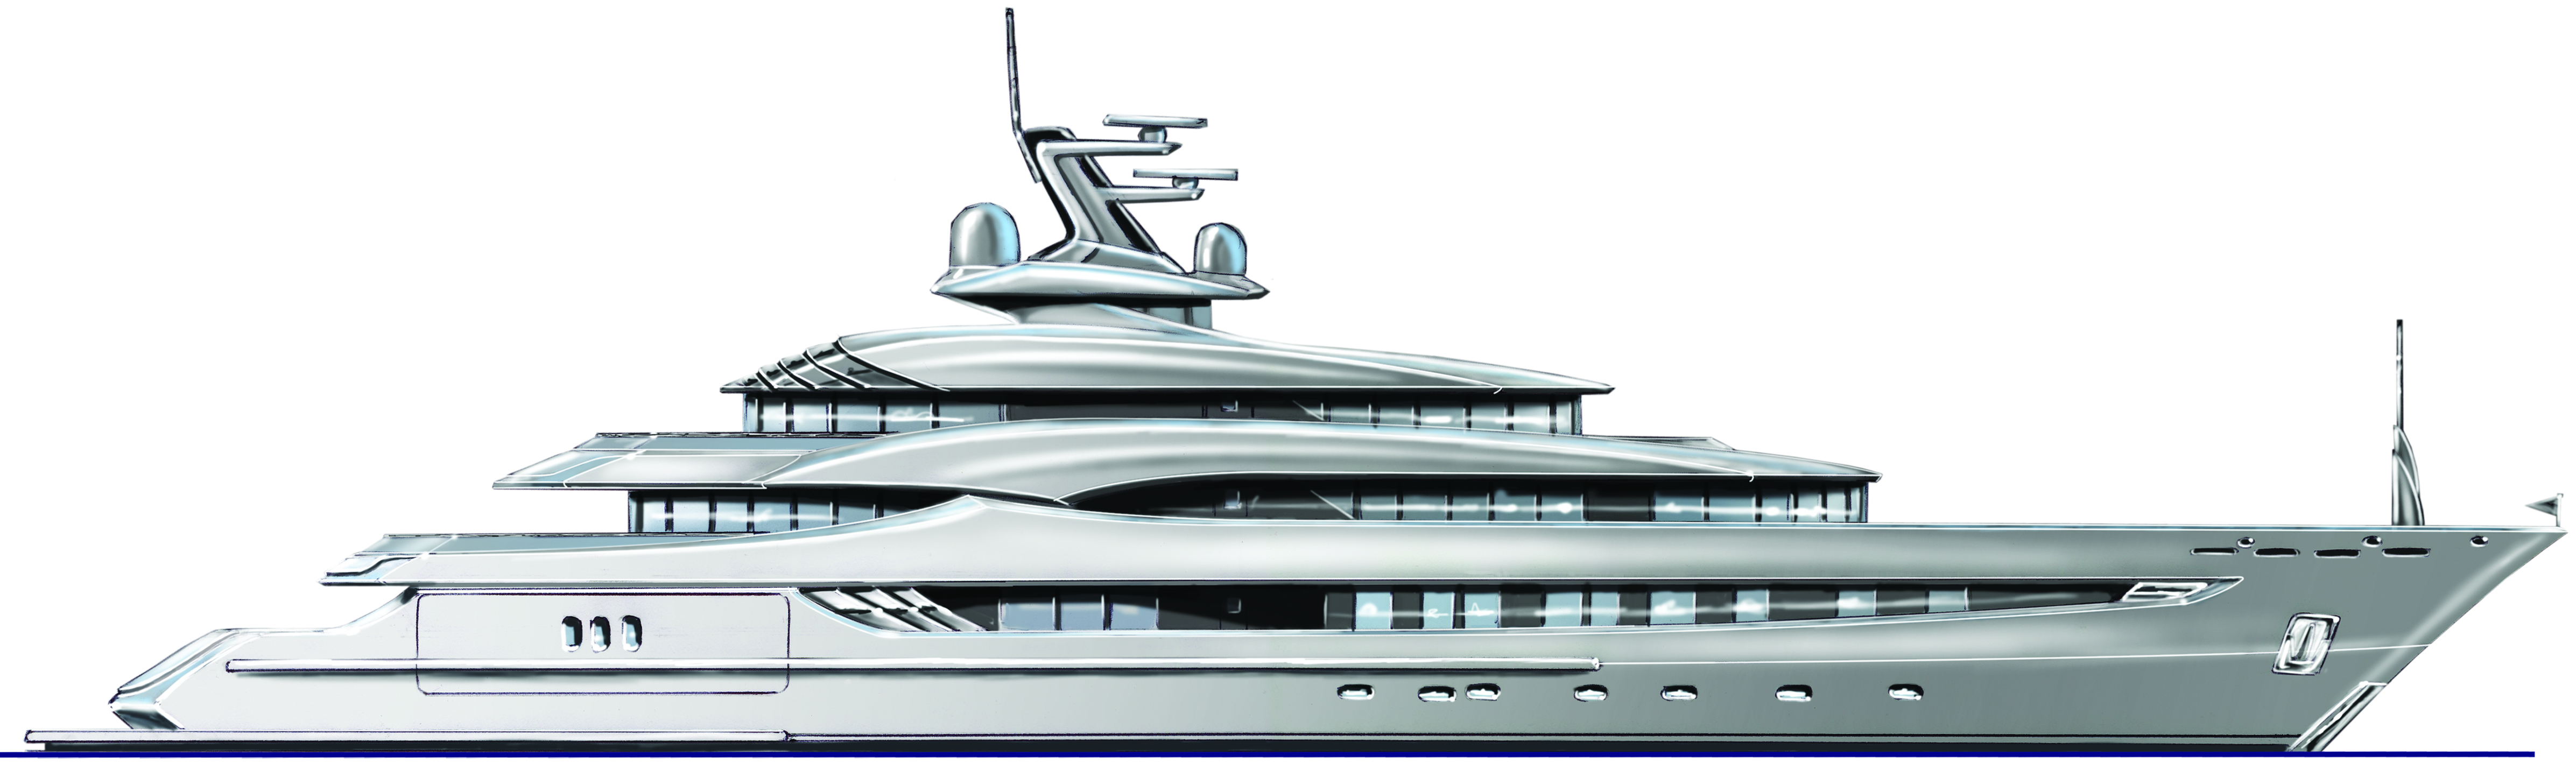 Art Line Yacht Design : Andrew moore designed she yacht for pegaso marine